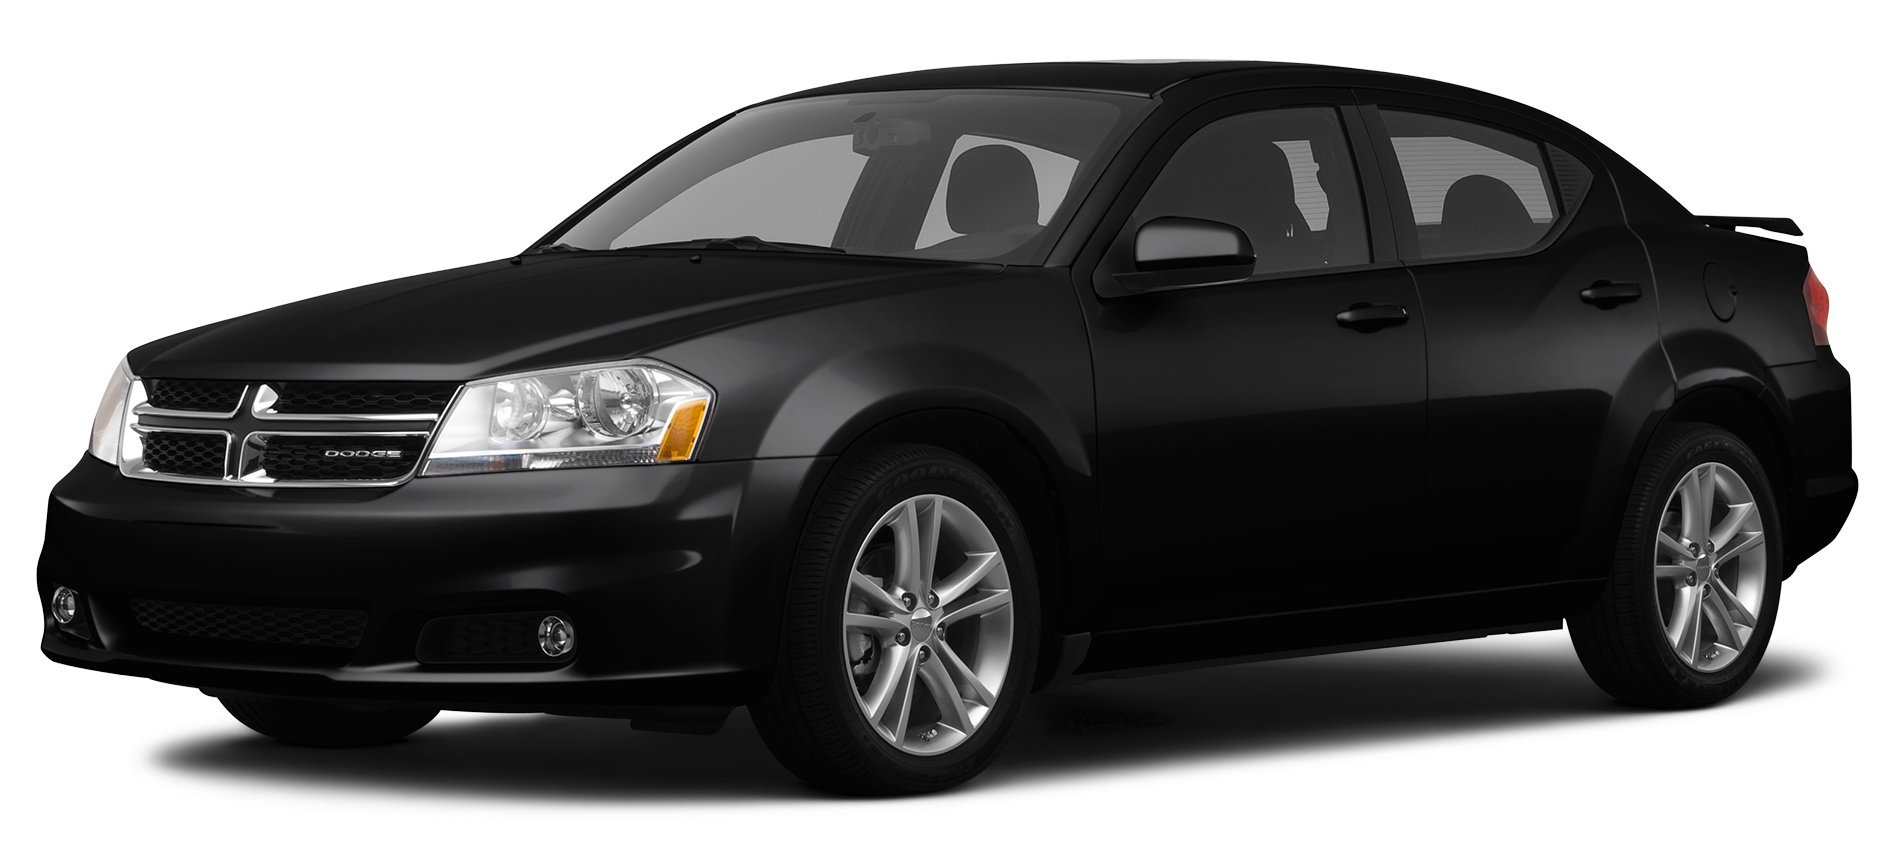 Amazoncom 2012 Dodge Avenger Reviews Images and Specs Vehicles